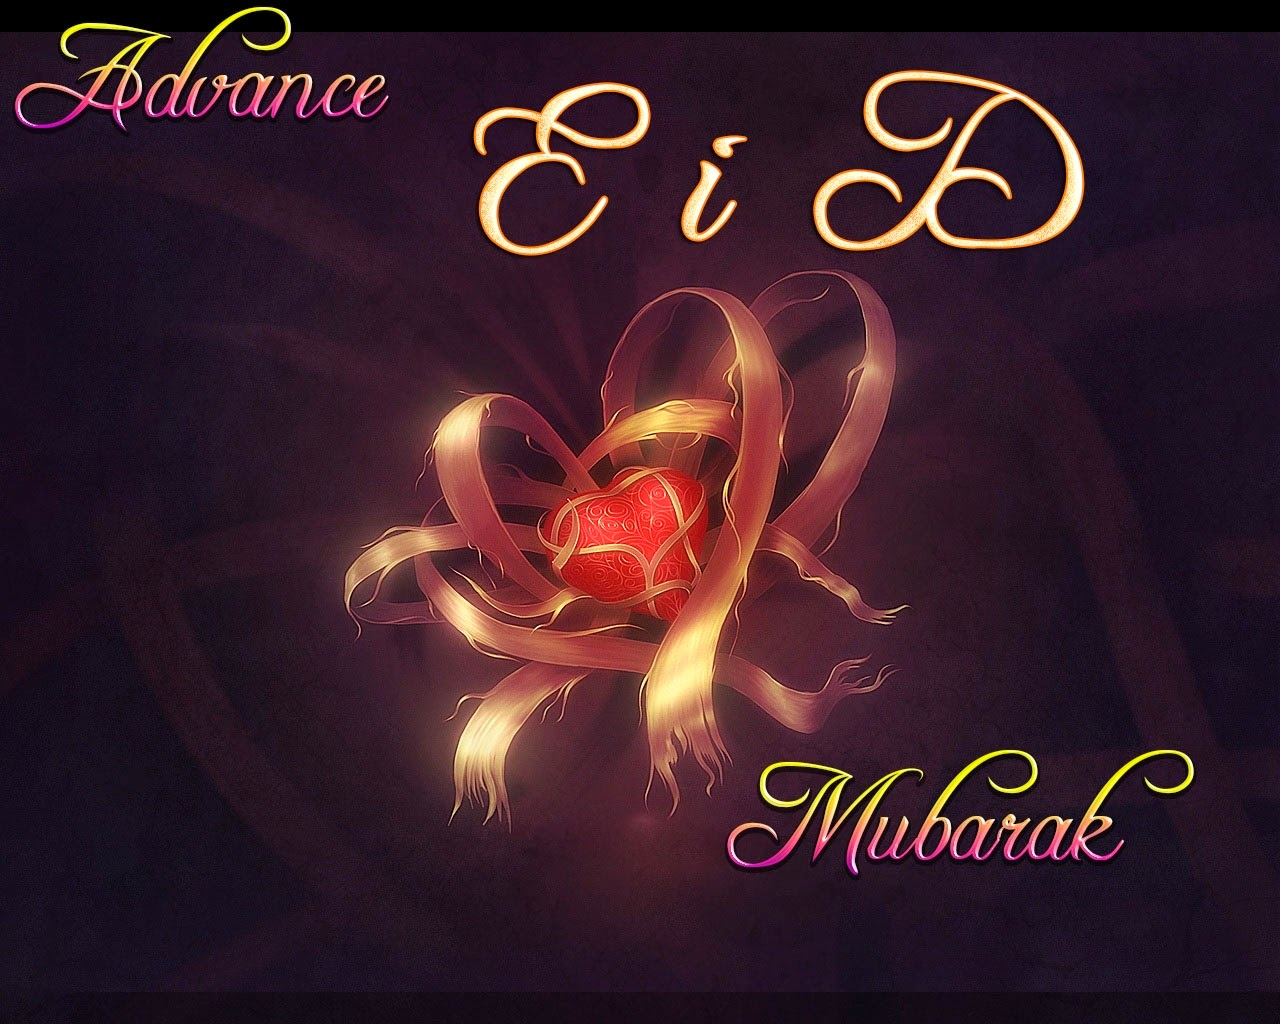 Eid greeting cards advance eid mubarak greetings ecards wallpapers advance eid mubarak greetings cards advance eid mubarak free ecards wishes wallpapers kristyandbryce Choice Image